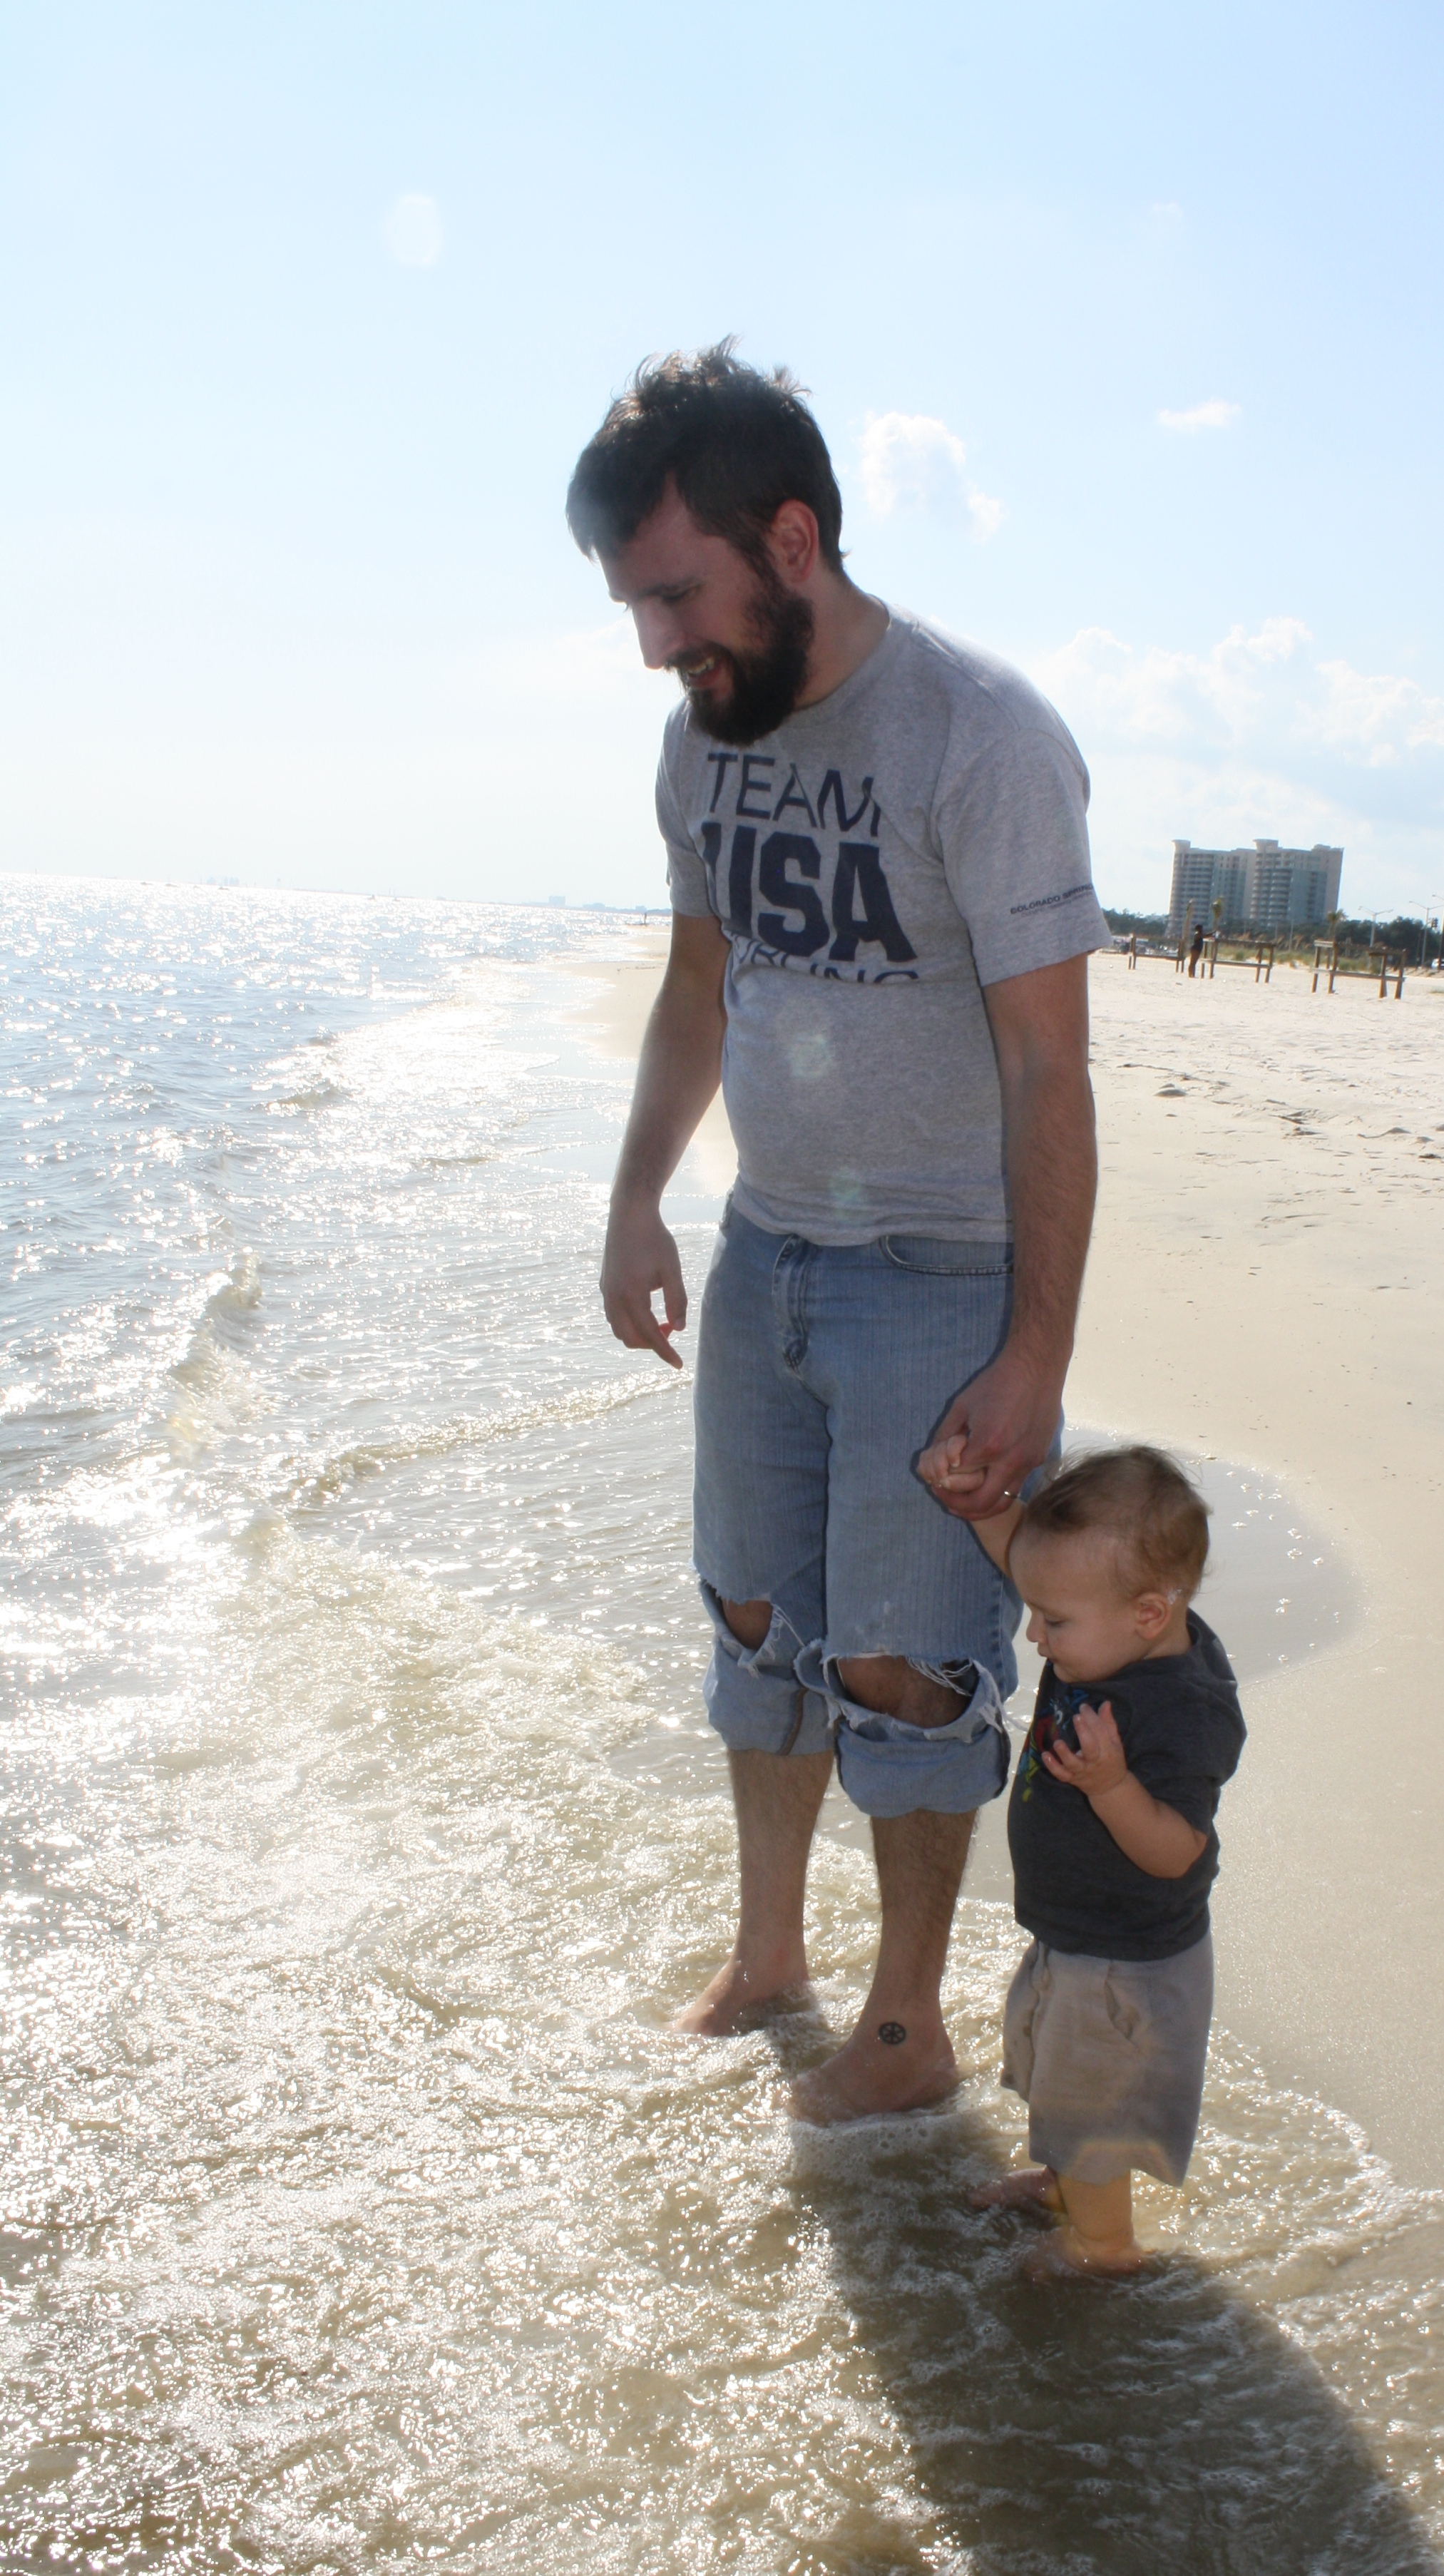 I think Judah was ready to jump the waves, taking his da-da with him!